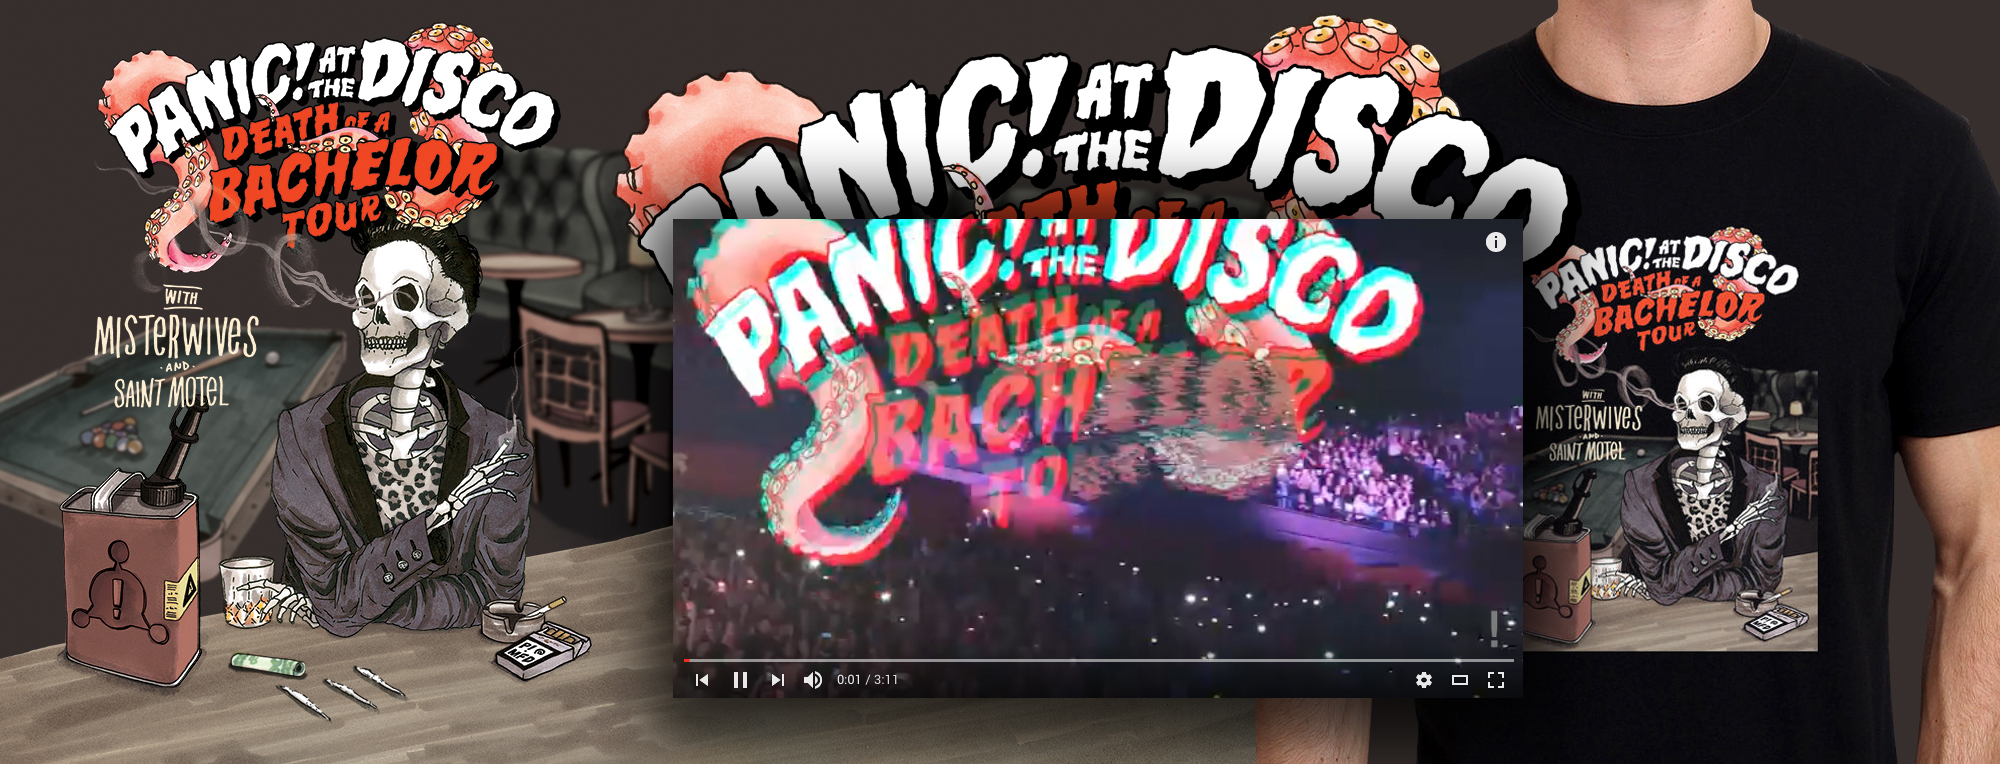 theblakewright-panicatthedisco-THE-DEATH-OF-A-BACHELOR-TOUR